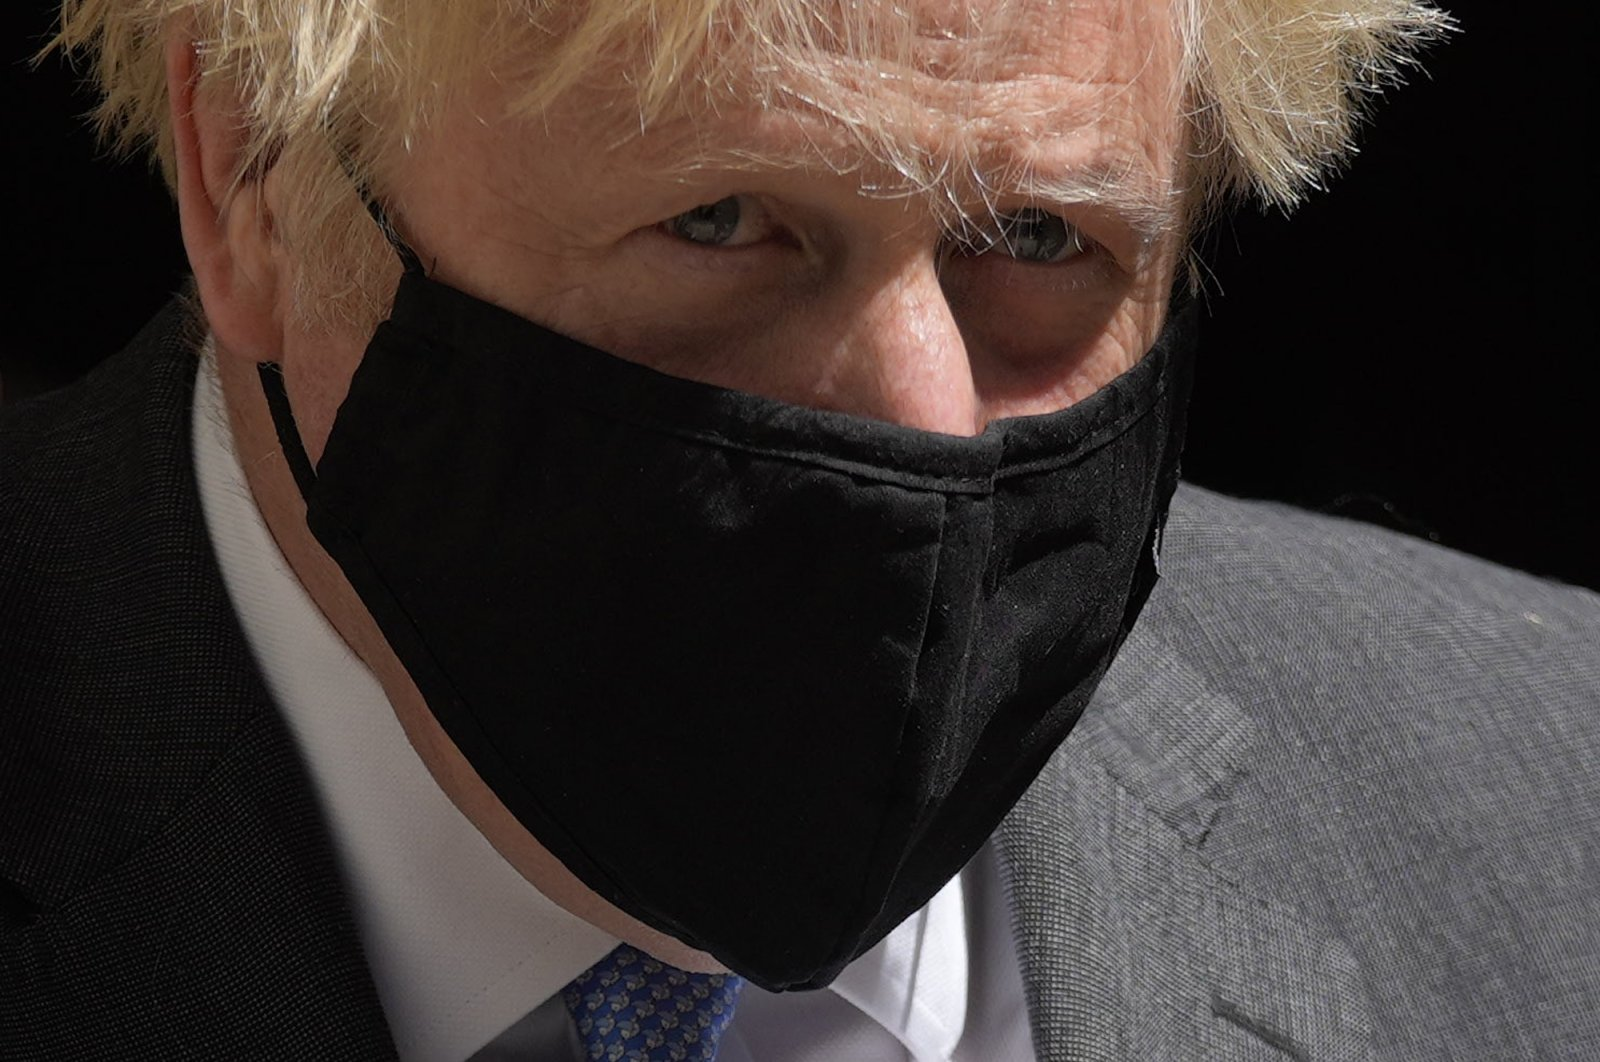 British Prime Minister Boris Johnson leaves 10 Downing Street to attend the weekly Prime Minister's Questions at the Houses of Parliament, in London, U.K., June 16, 2021. (AP Photo)